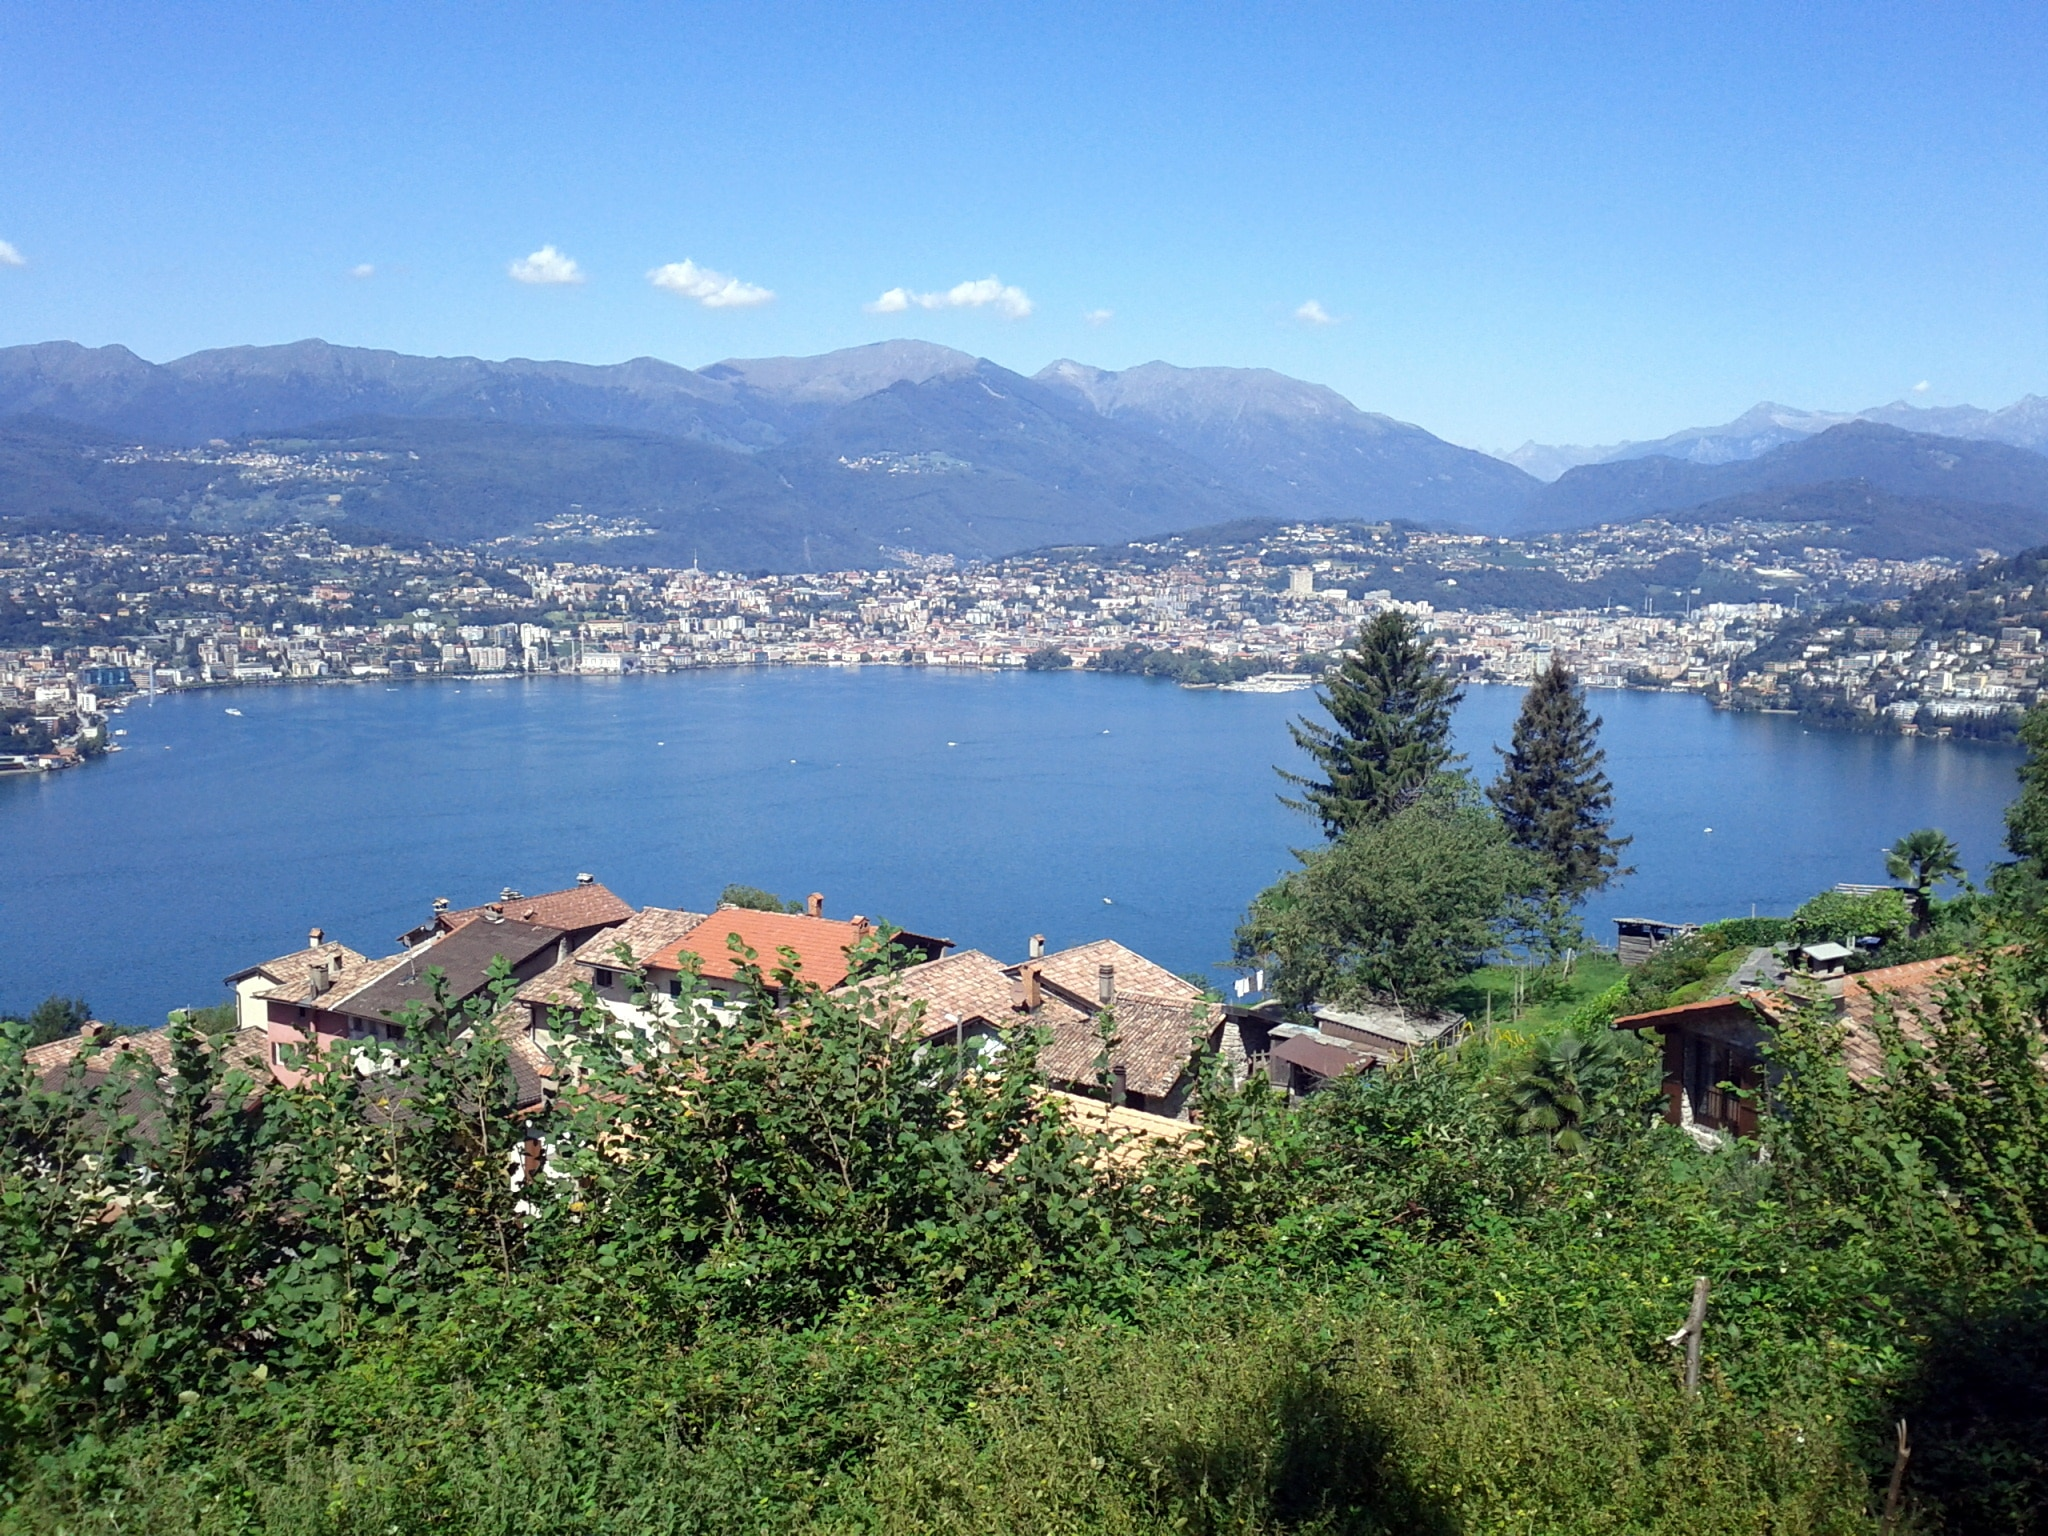 Lugano as seen from the south.